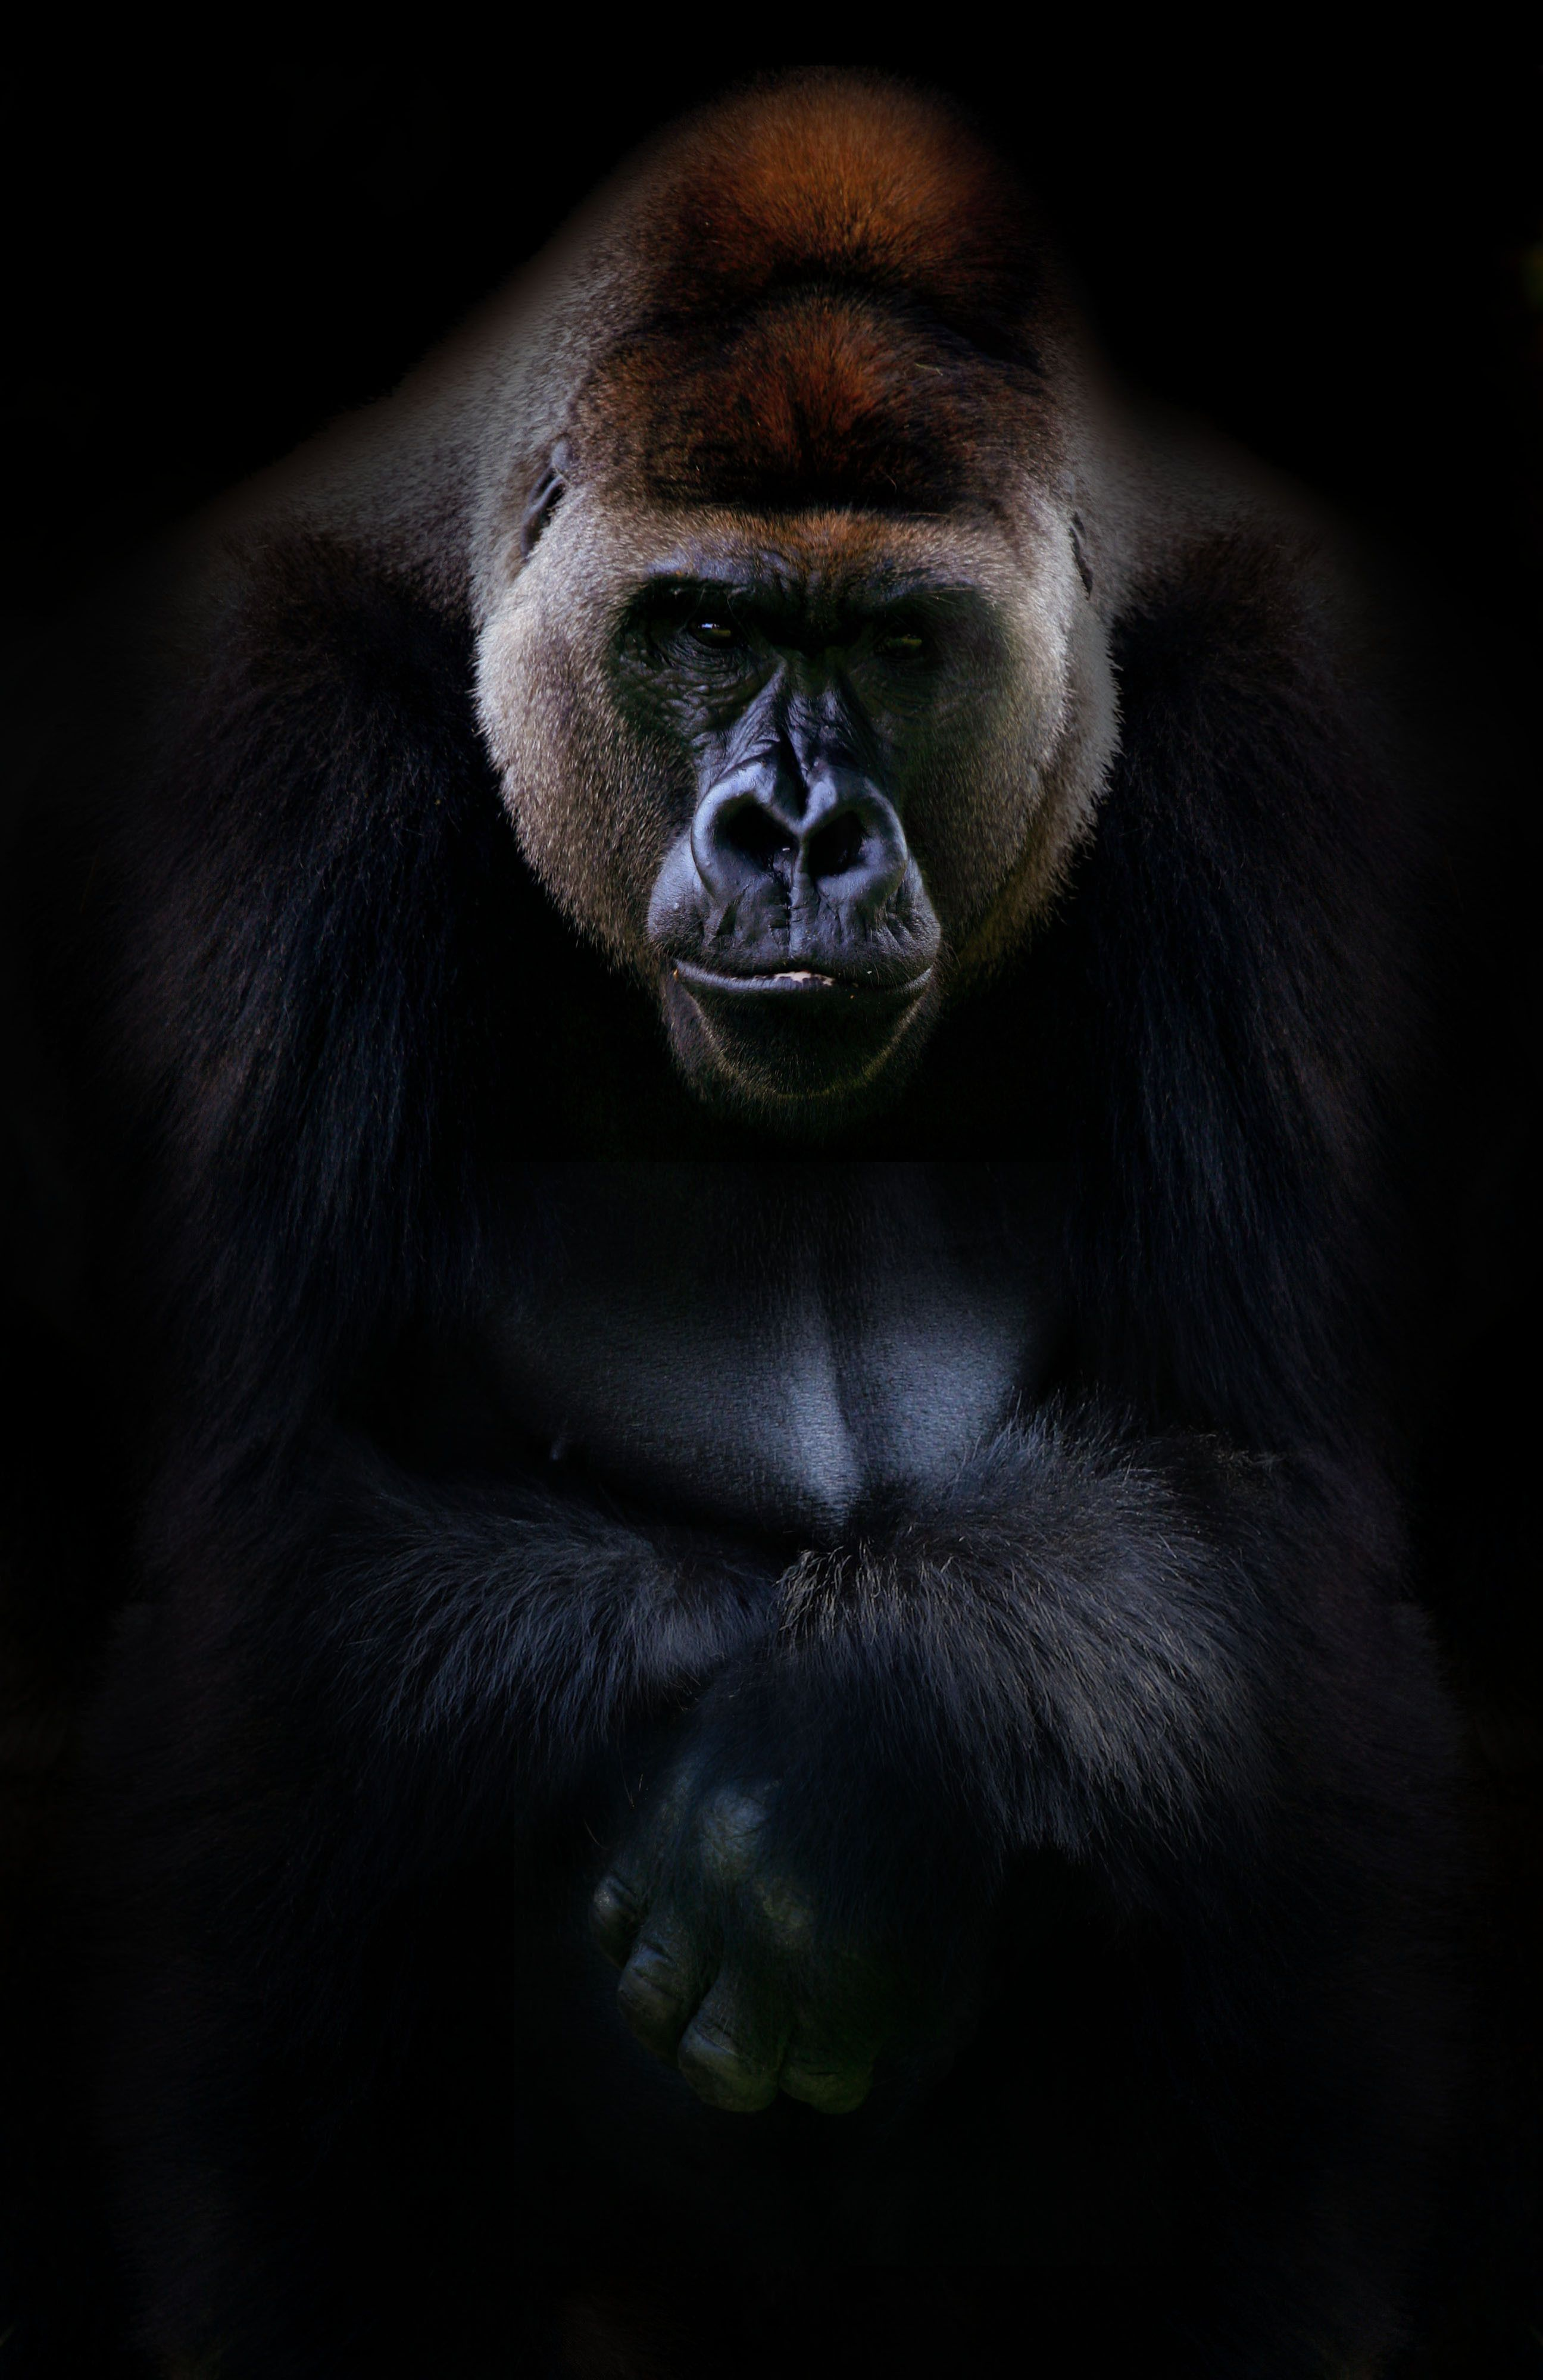 Cute Monkey Wallpapers For Mobile Silverback Gorilla Mates Gorilla Wallpaper Silverback